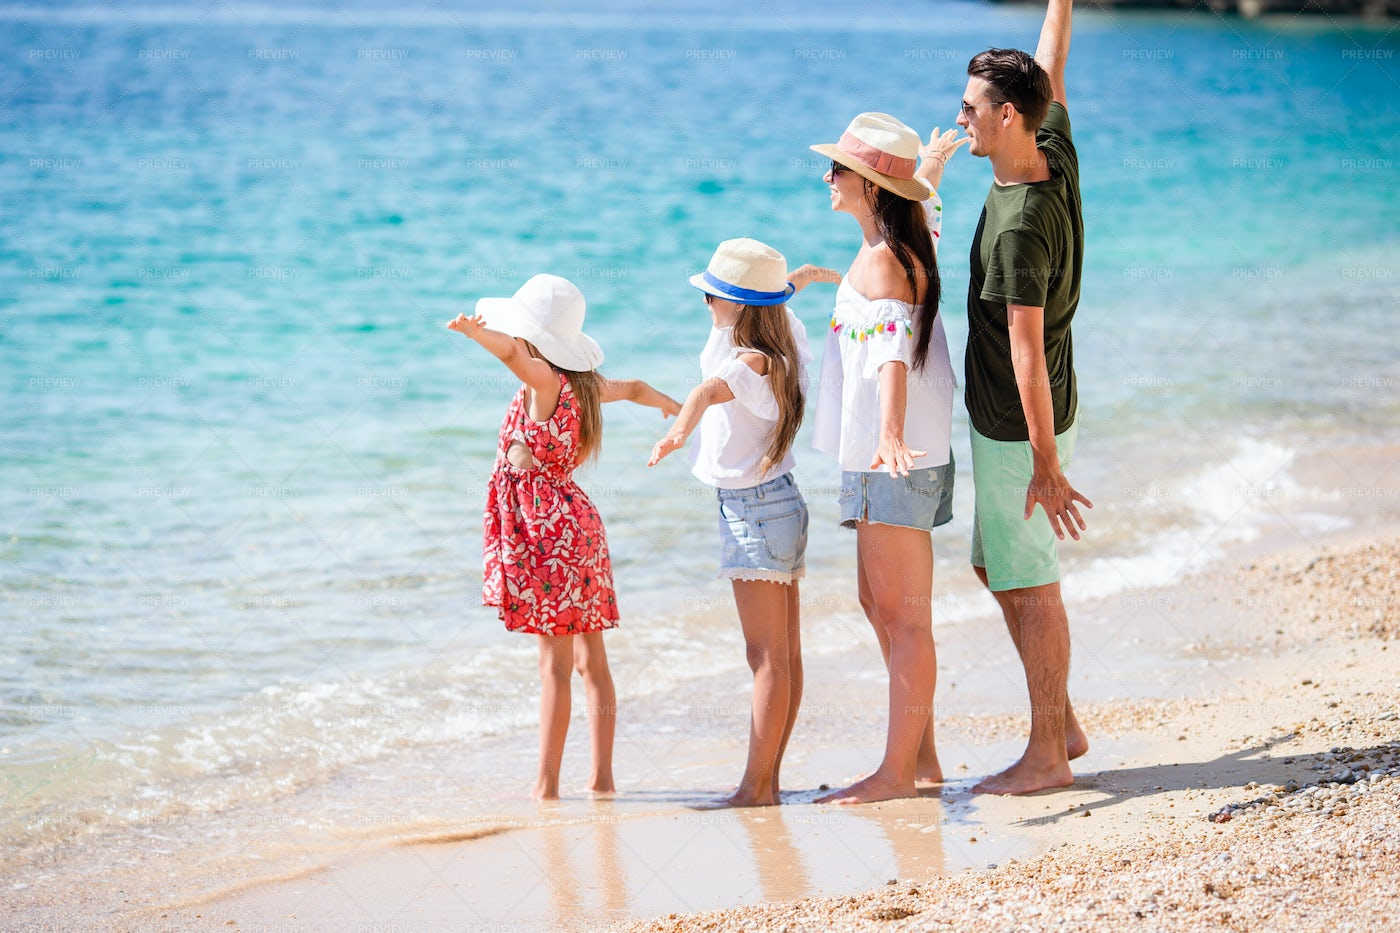 Family Of Four On Vacation: Stock Photos